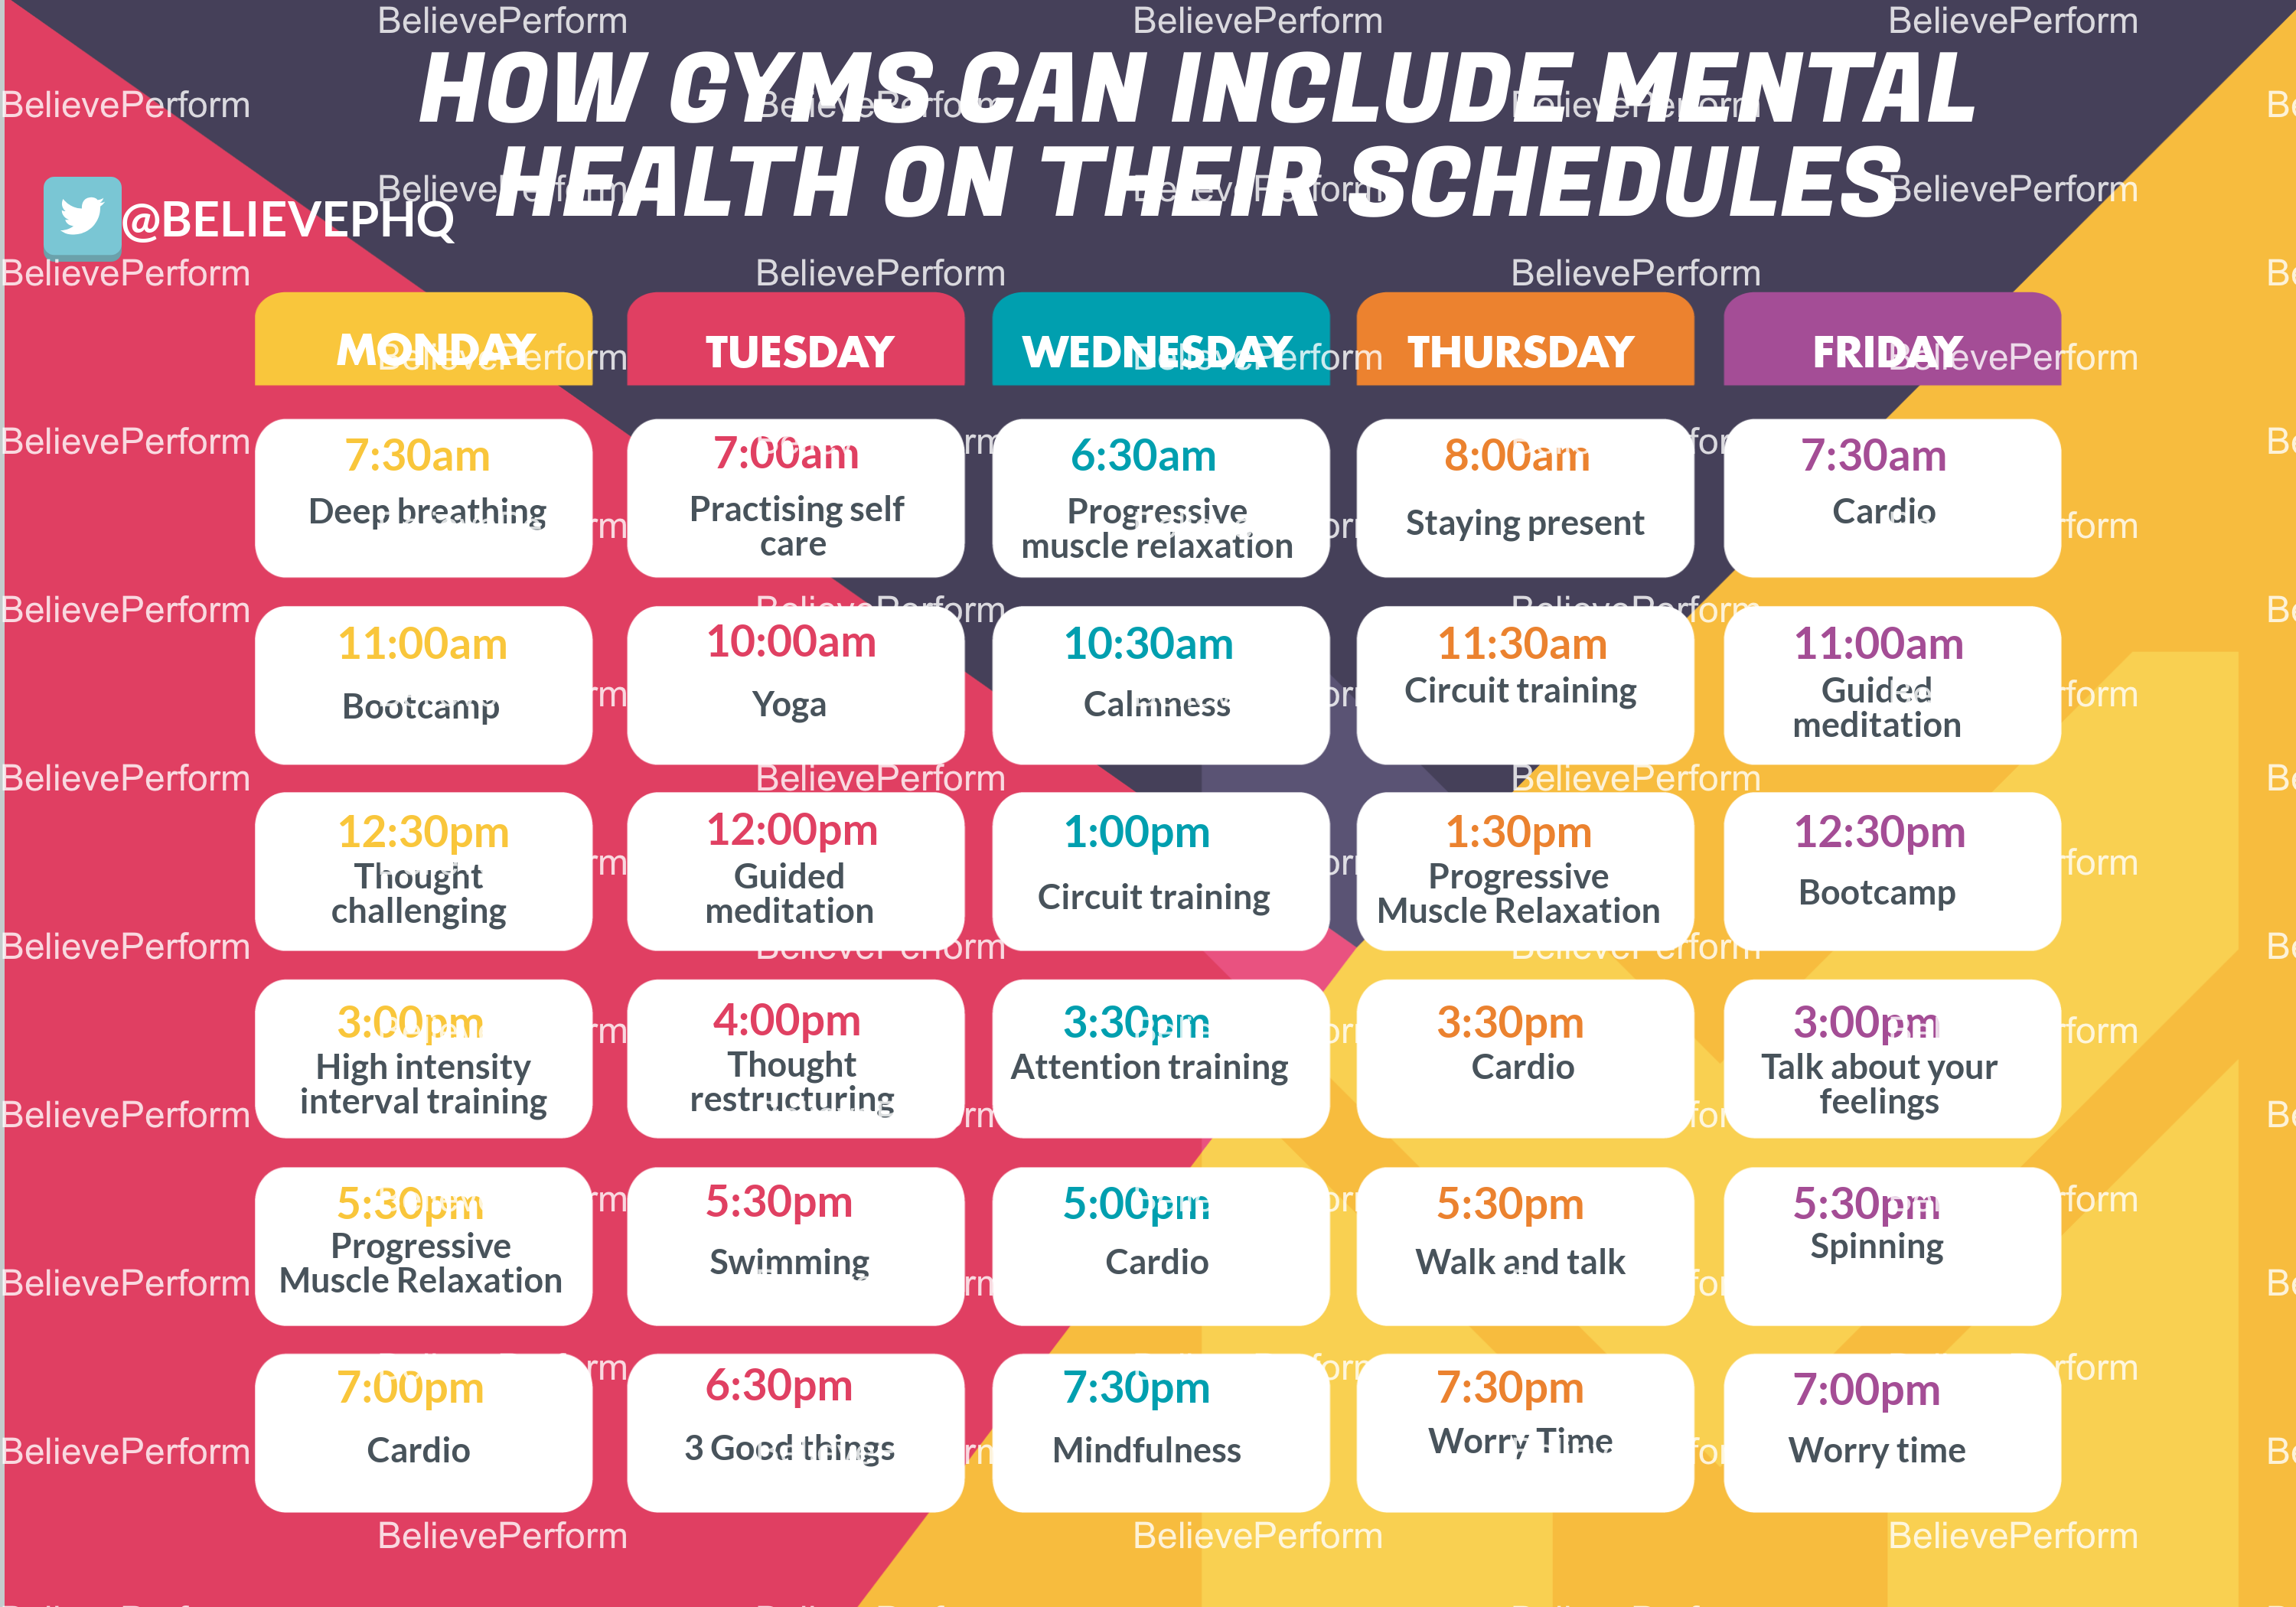 How gyms can include mental health on their training schedules